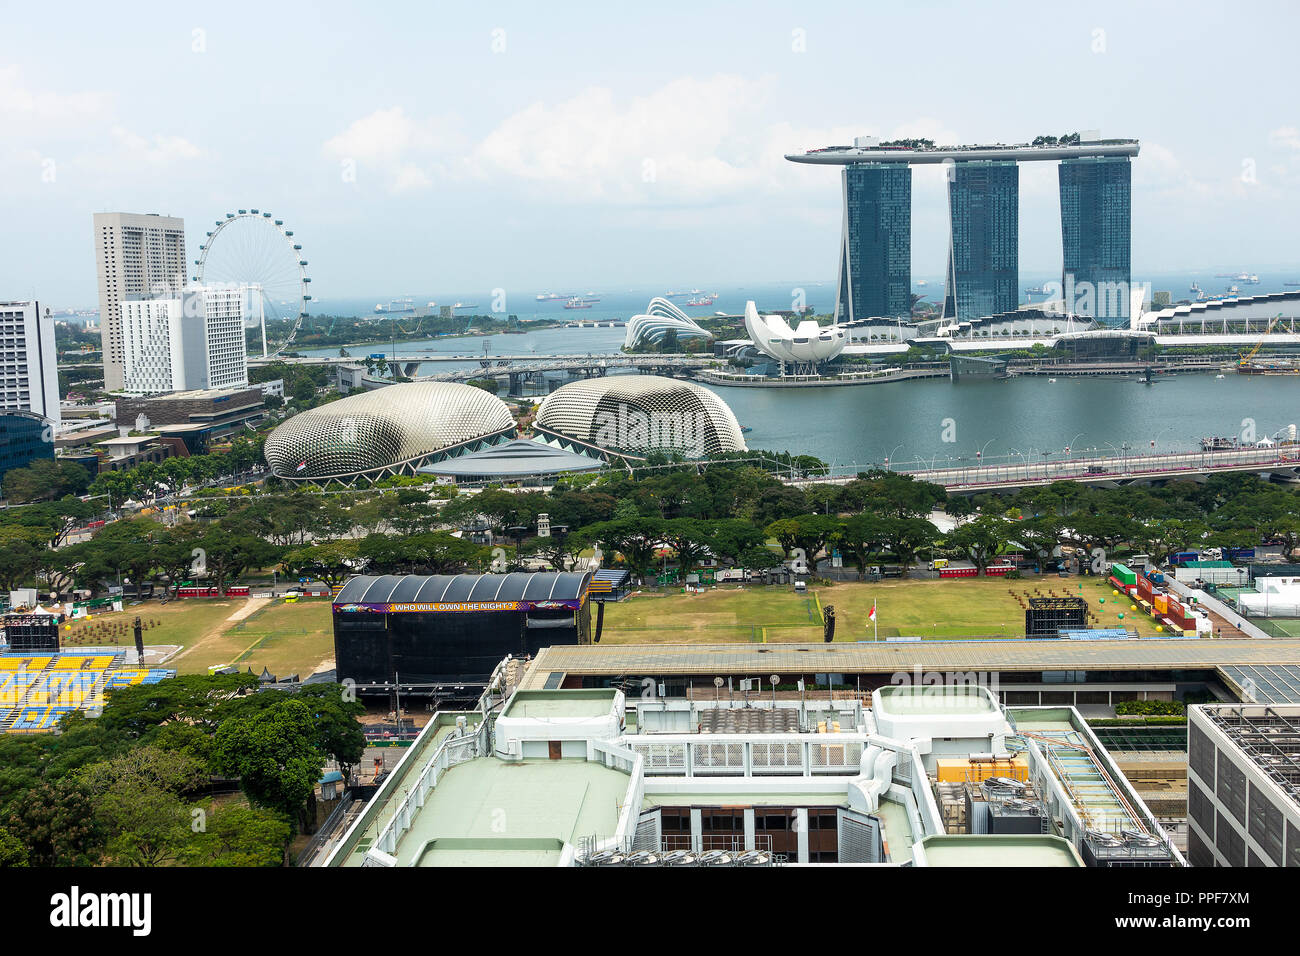 An Aerial View of The Padang with The Singapore Flyer, Marina Bay Sands Hotel, and The Esplanade Theatres in Republic of Singapore Asia Stock Photo